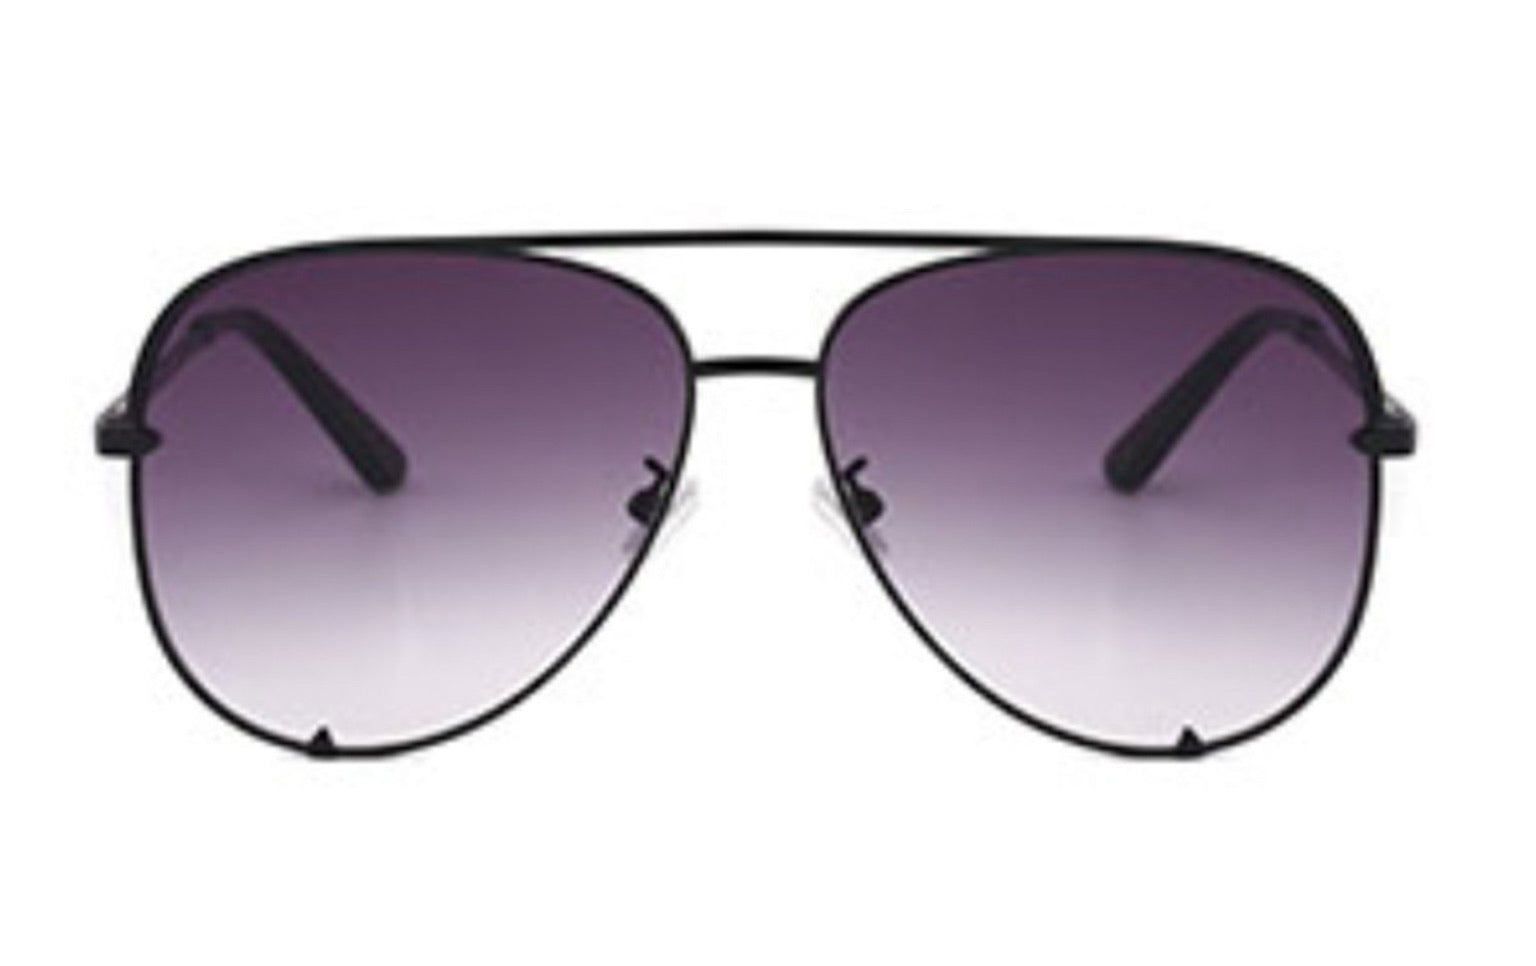 Kristen Sunglasses - Black Fade